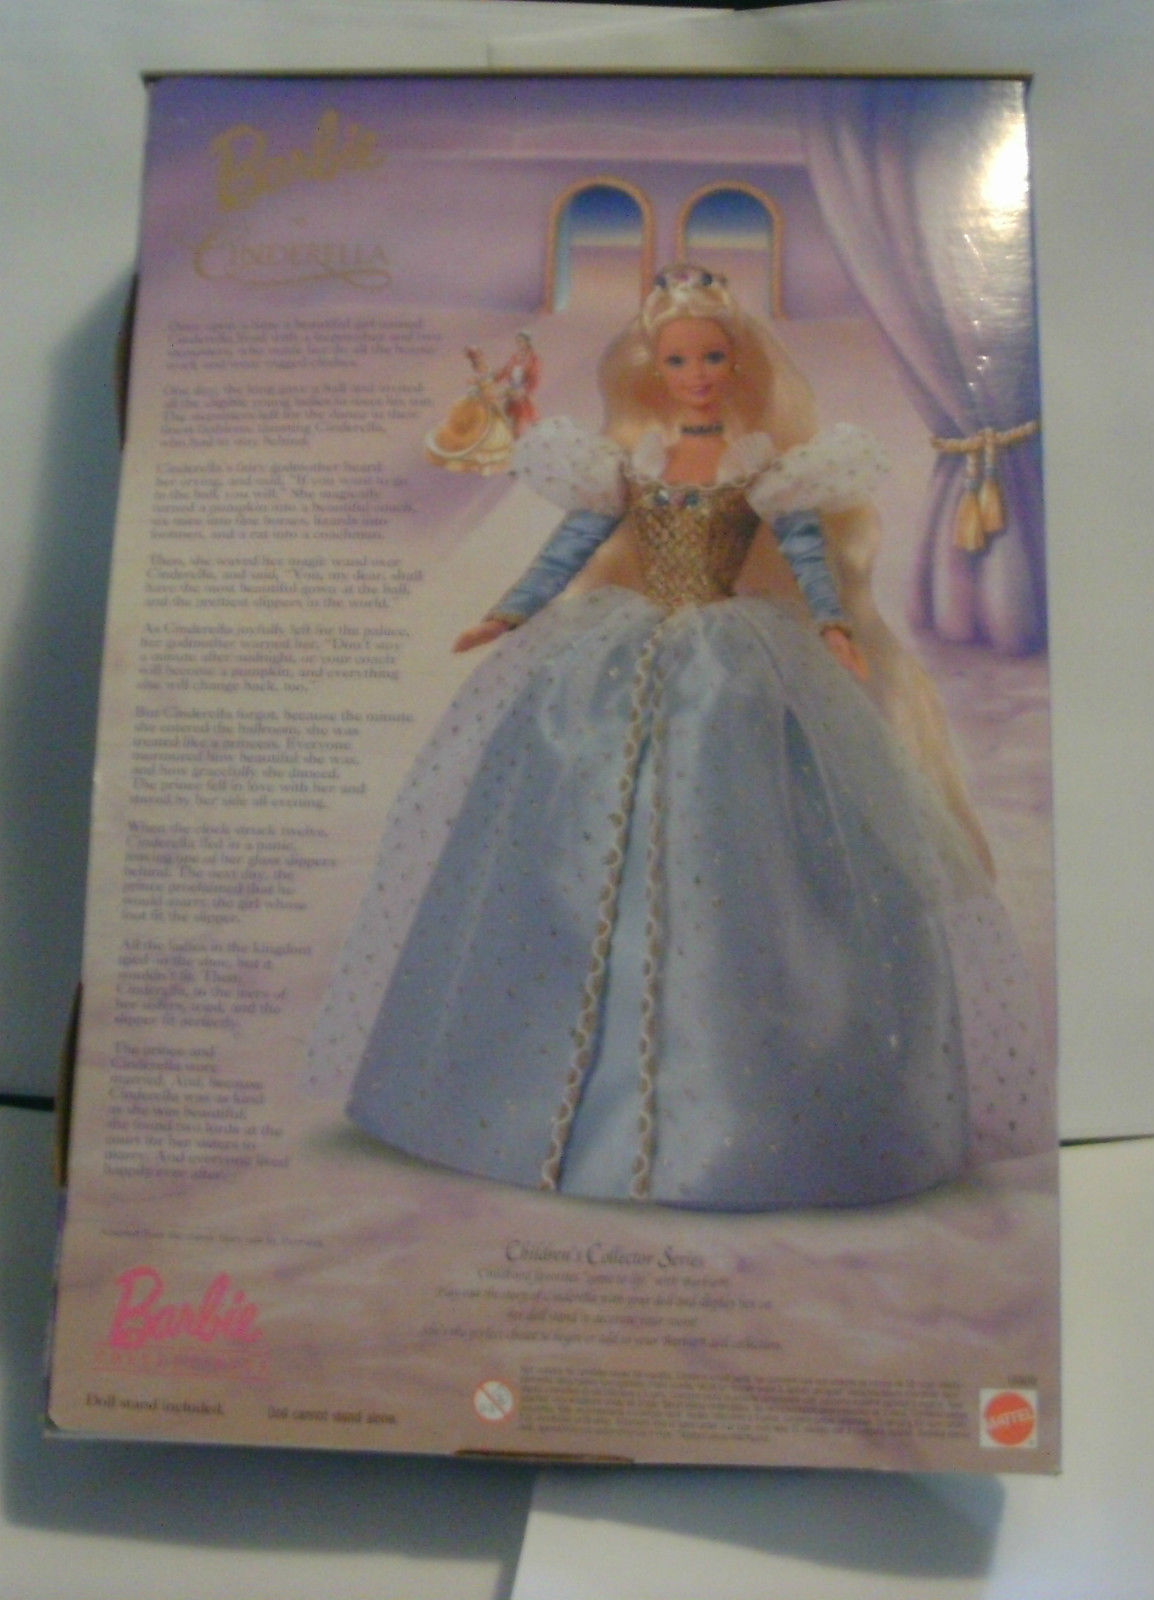 1996 Barbie as Cinderella Collector Edition Children's Collector Series